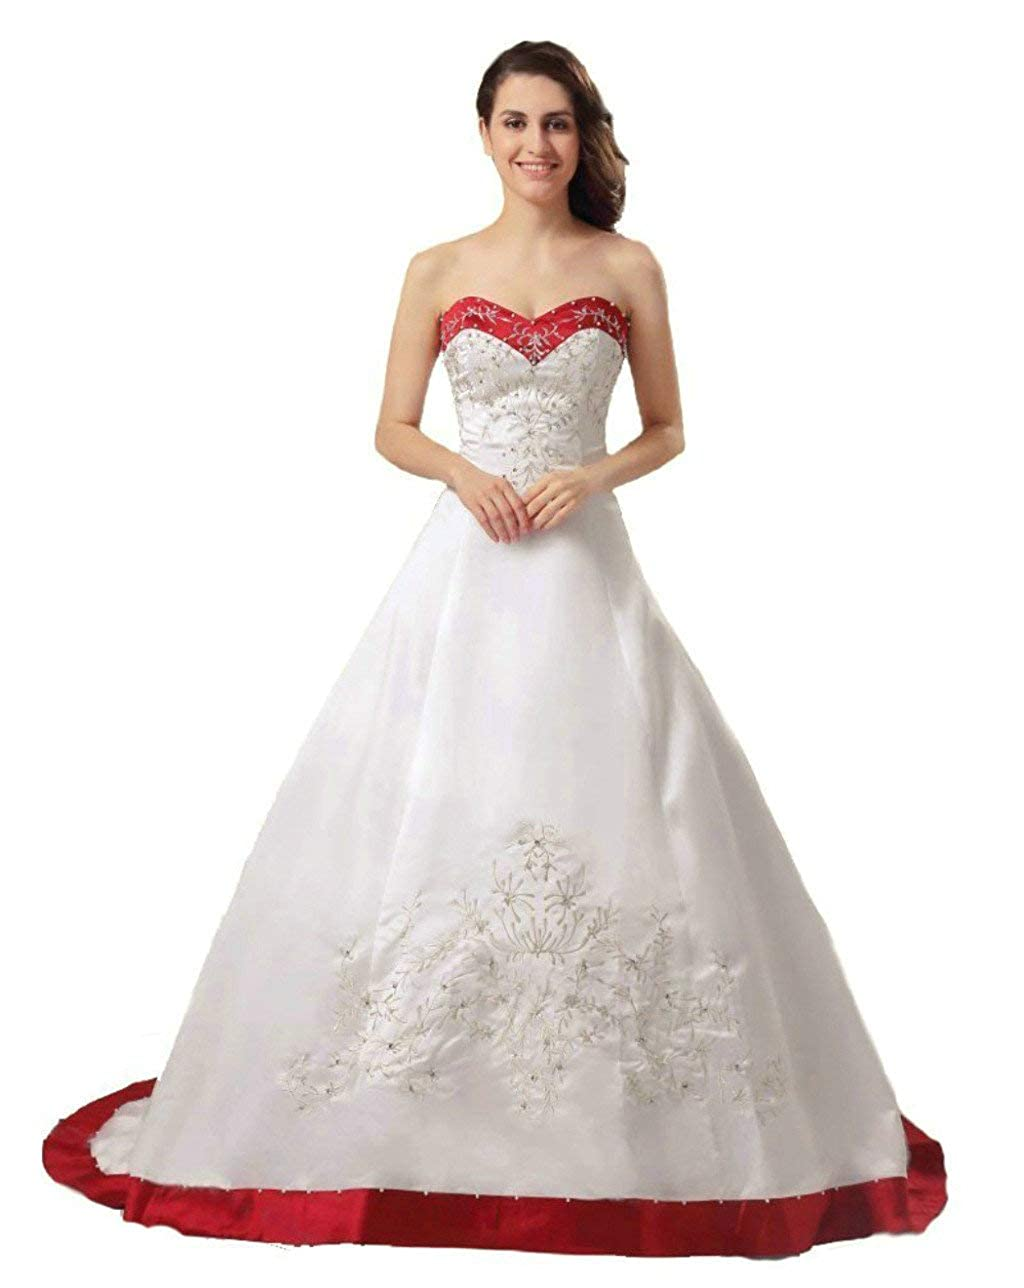 Ivory & Red Vantexi Women's Sweetheart Satin Aline Bridal Dress Wedding Gown